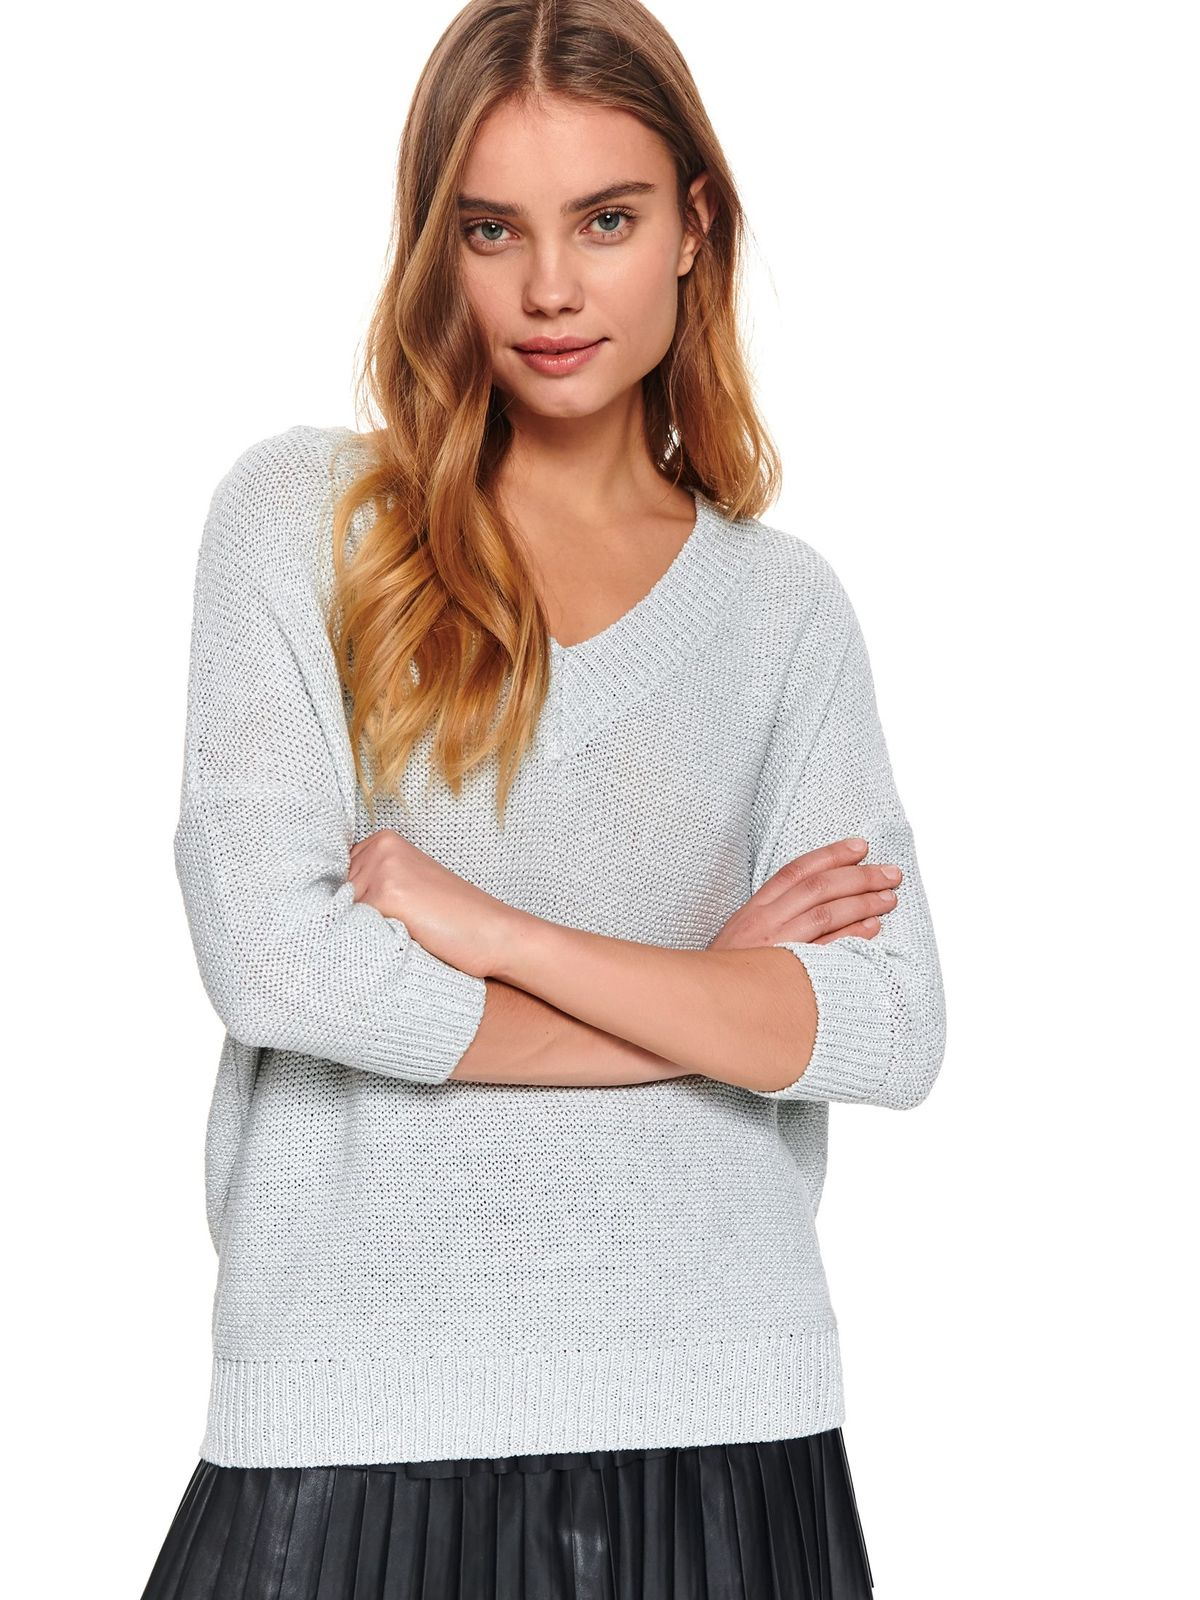 White sweater flared with v-neckline knitted